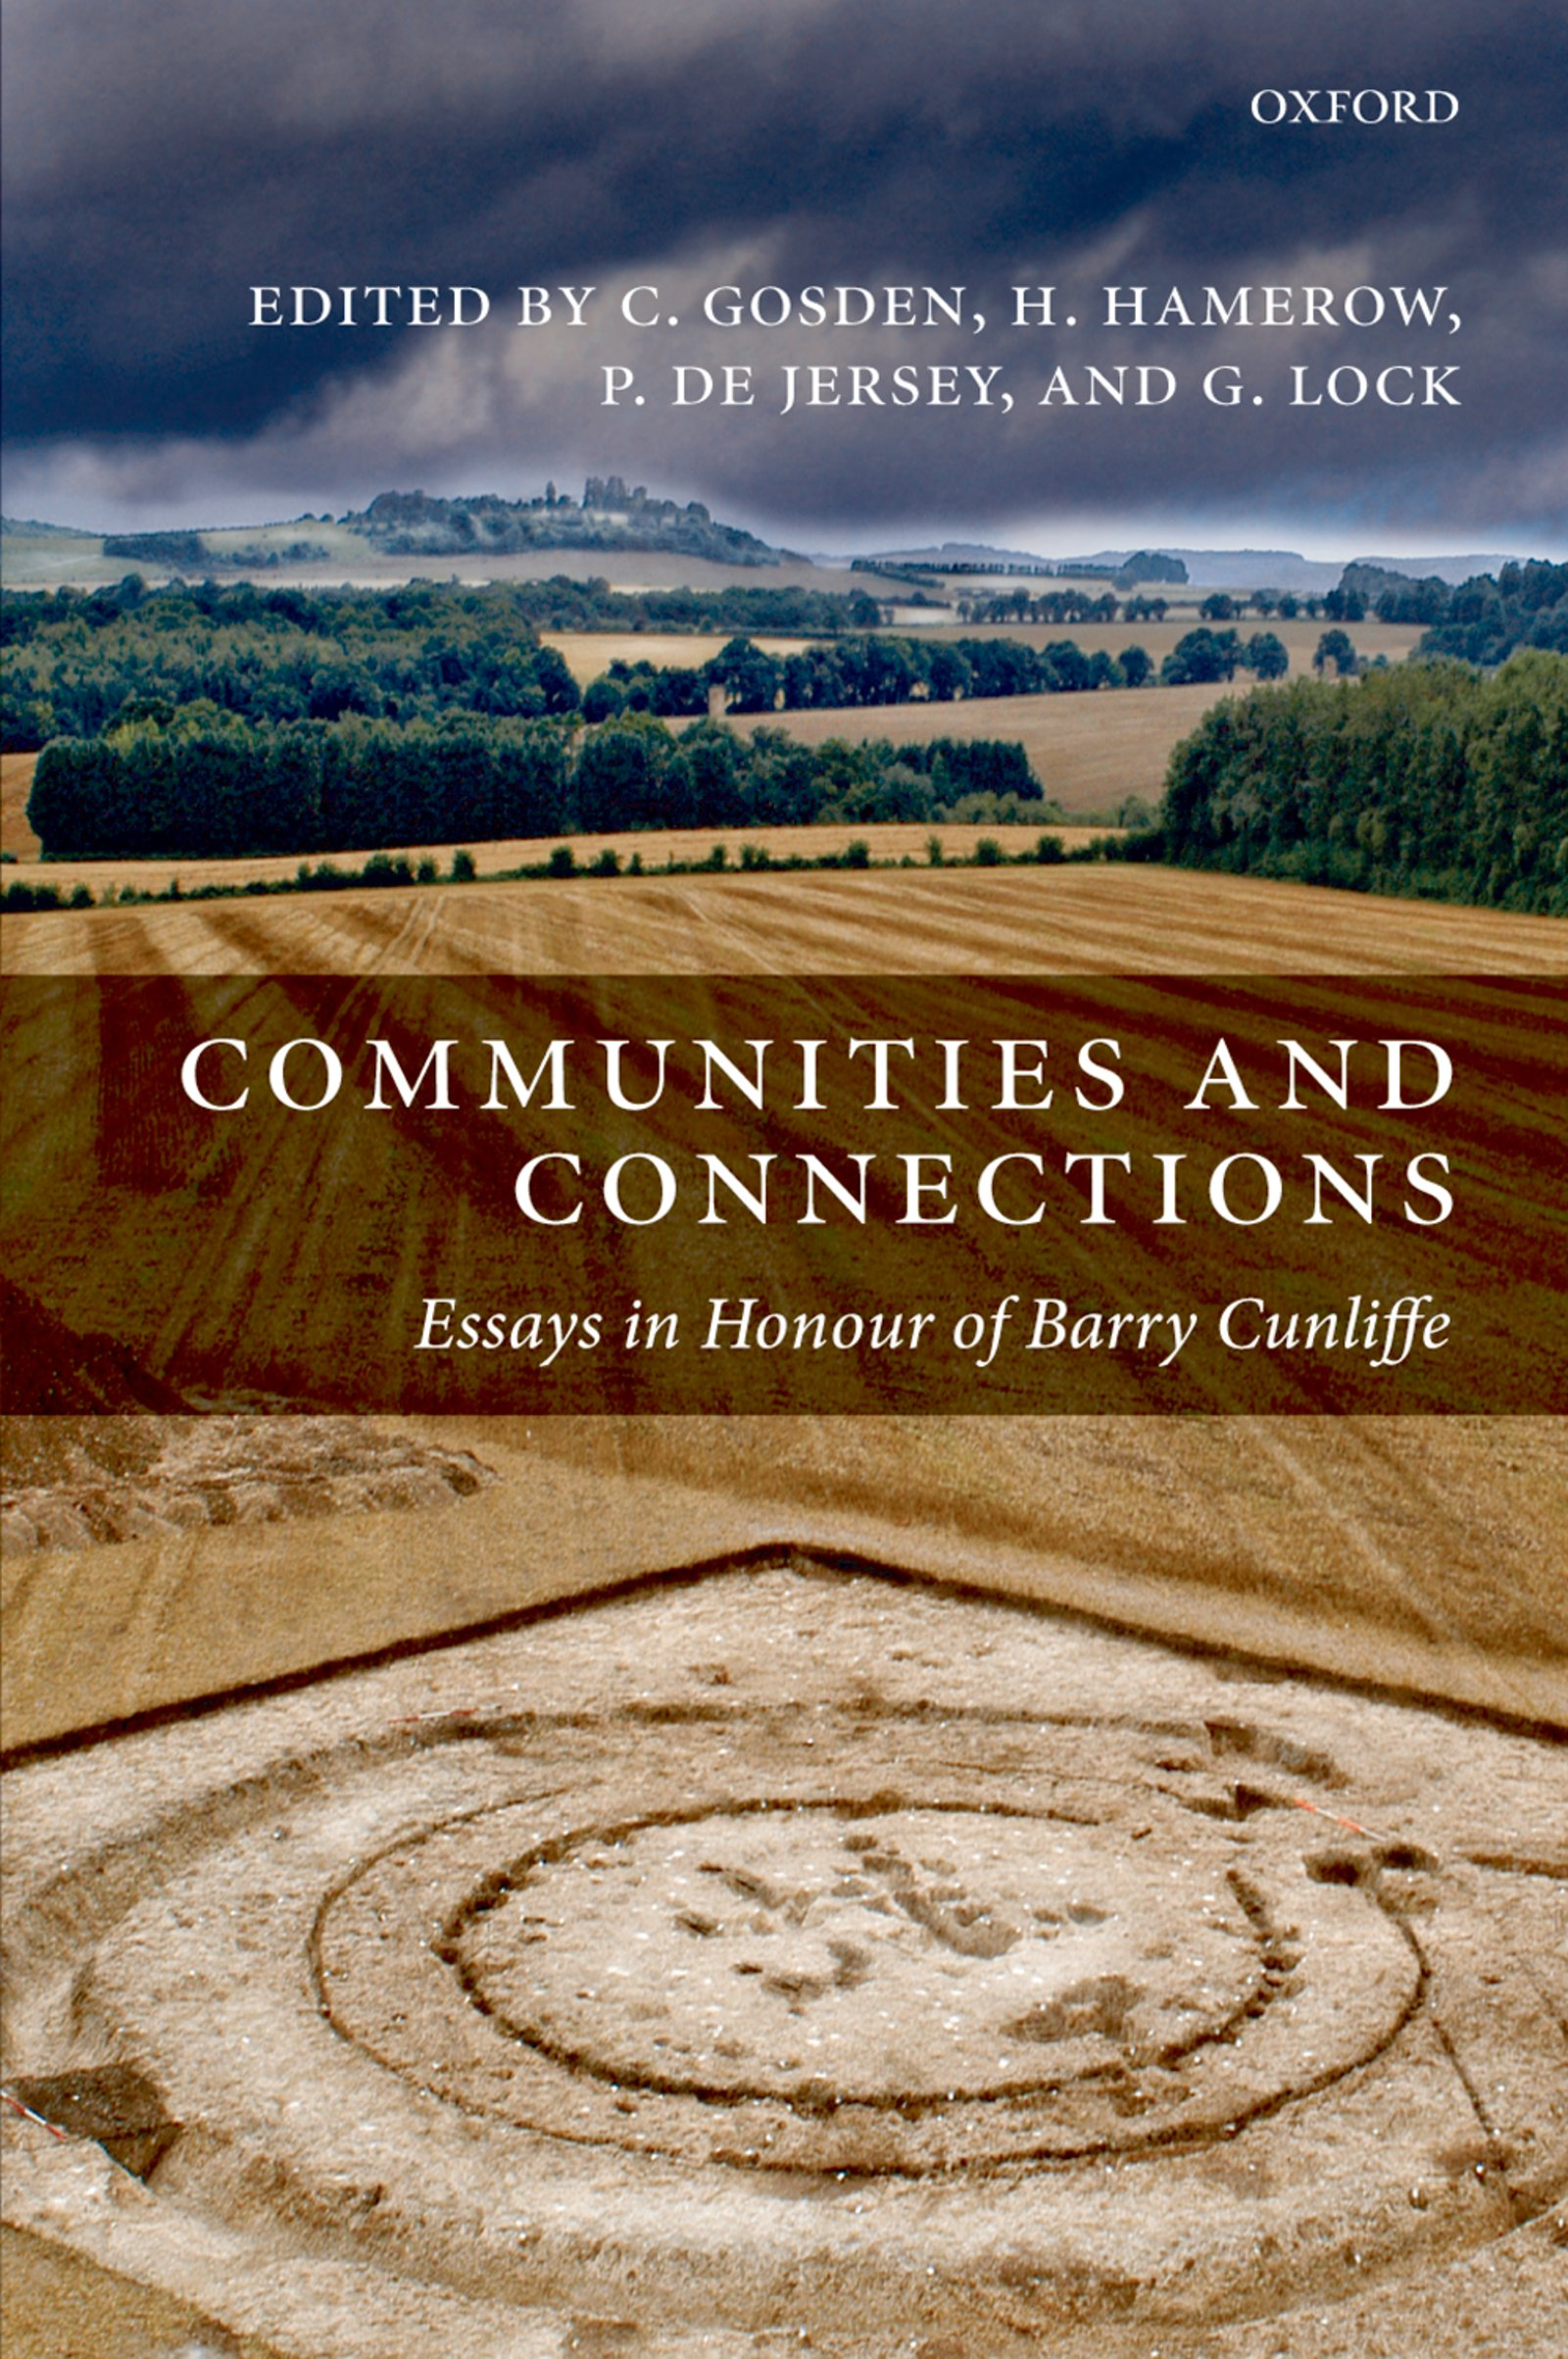 Communities and ConnectionsEssays in Honour of Barry Cunliffe